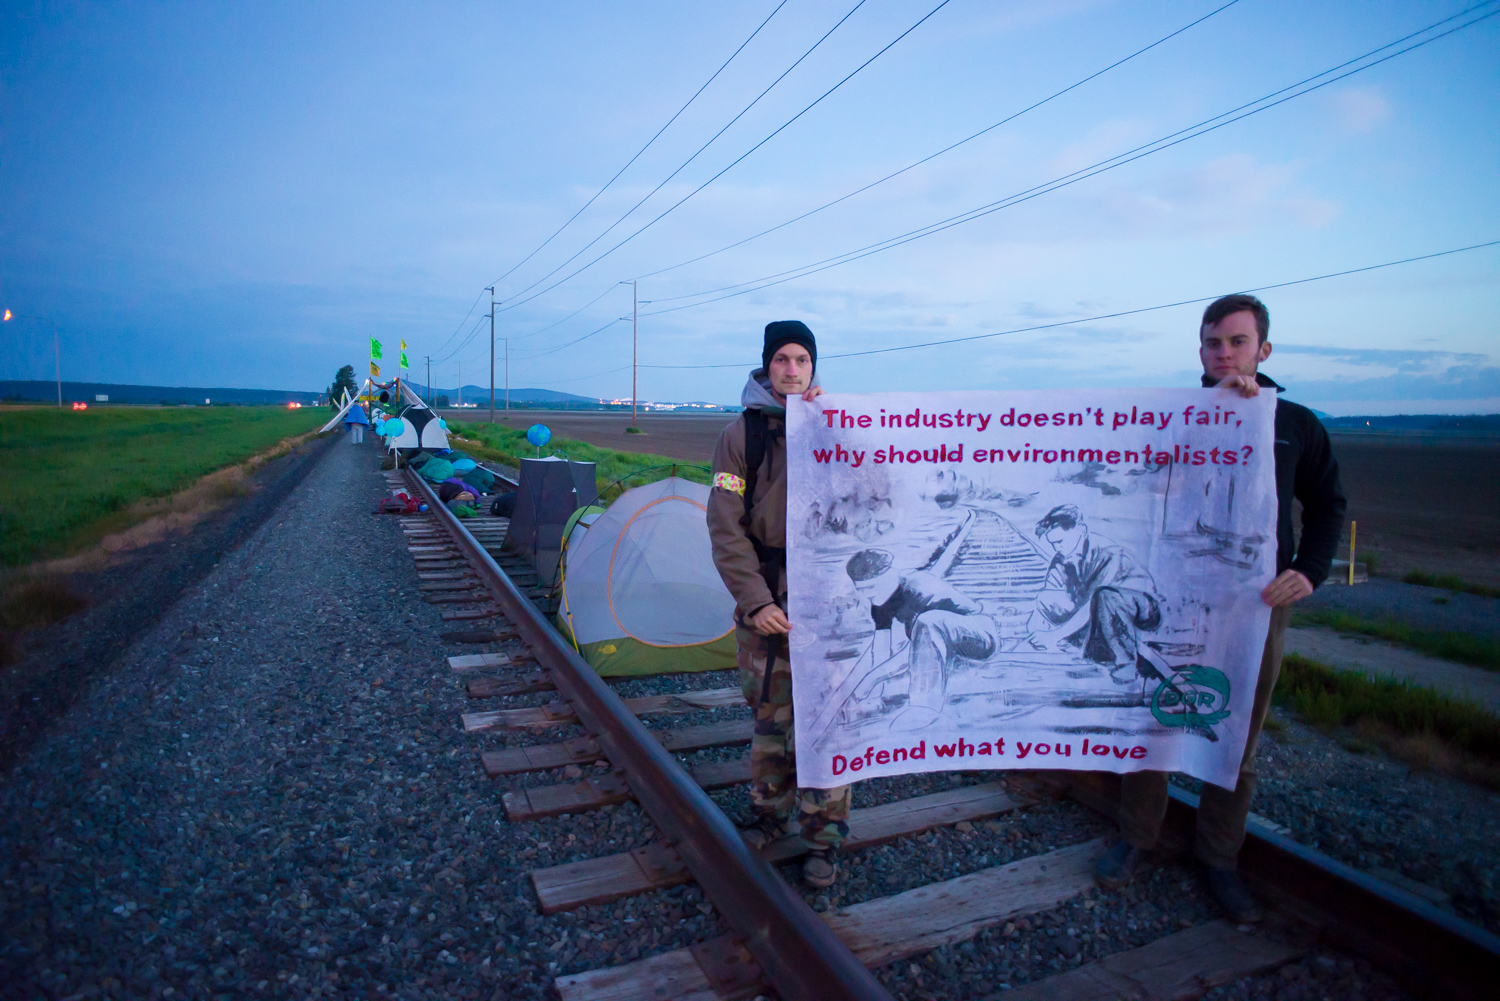 Holding a banner at the train blockade; banner advocates for sabotage.